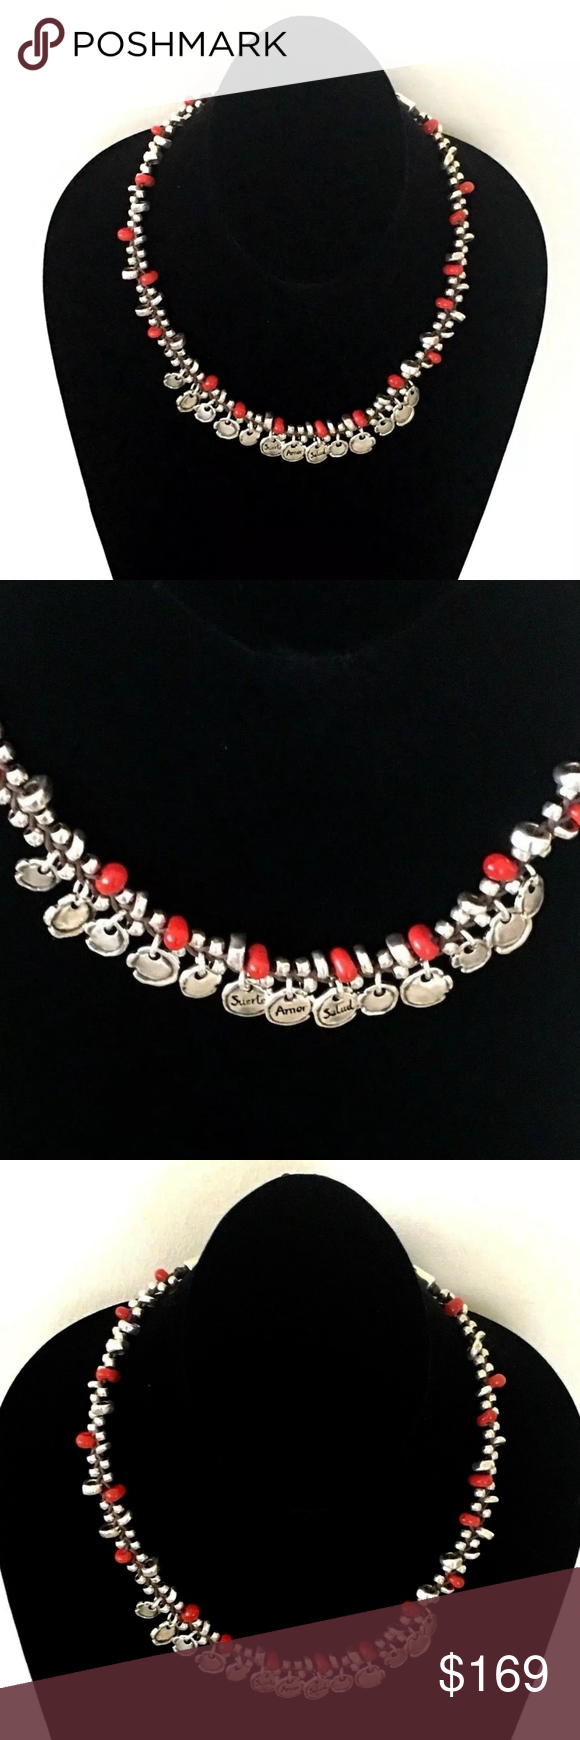 """NWT! Uno de 50 Necklace """"Hot Marking"""" COL1203. UNO de 50 Necklace.  """"Hot Marking"""" COL1203.  Uno de 50 short necklace kind choker made with small handmade glass beads in red color and silver-plated. It has several pieces with an original seal shaped and silver-plated design, and with engraved messages in Spanish """"Suerte, Amor y Salud"""" """"Luck, Love and Health"""".  Length: 16"""" up to 17.5"""".  Retail: $200.00.  Spectacular piece handcrafted in Spain!!!. UNO de 50 Jewelry Necklaces"""